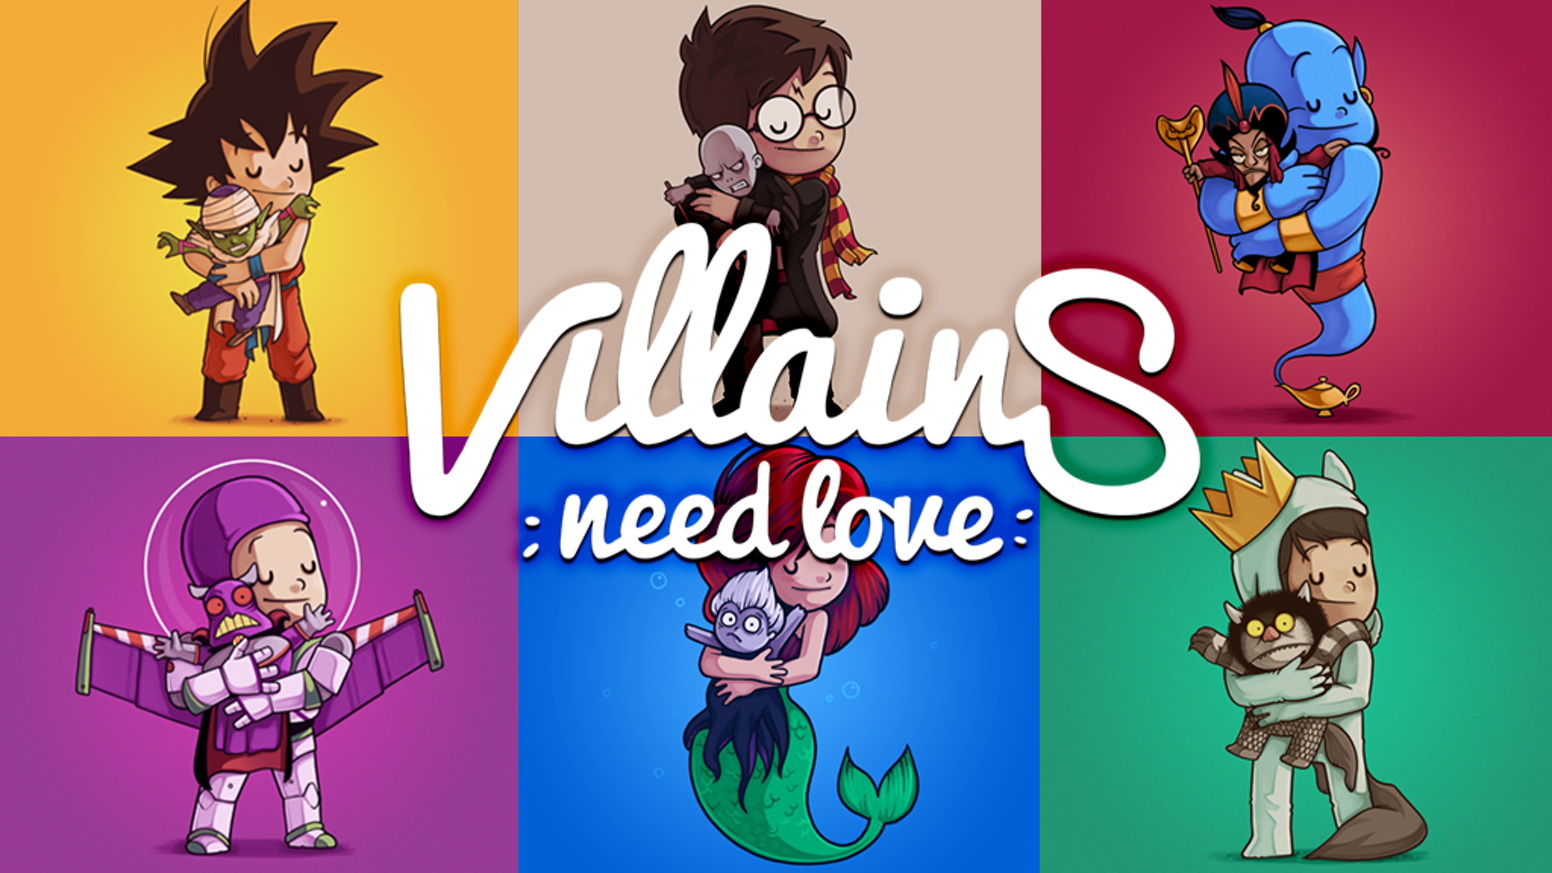 Villains are bad tempered guys, what if we try to change that by giving them some love?